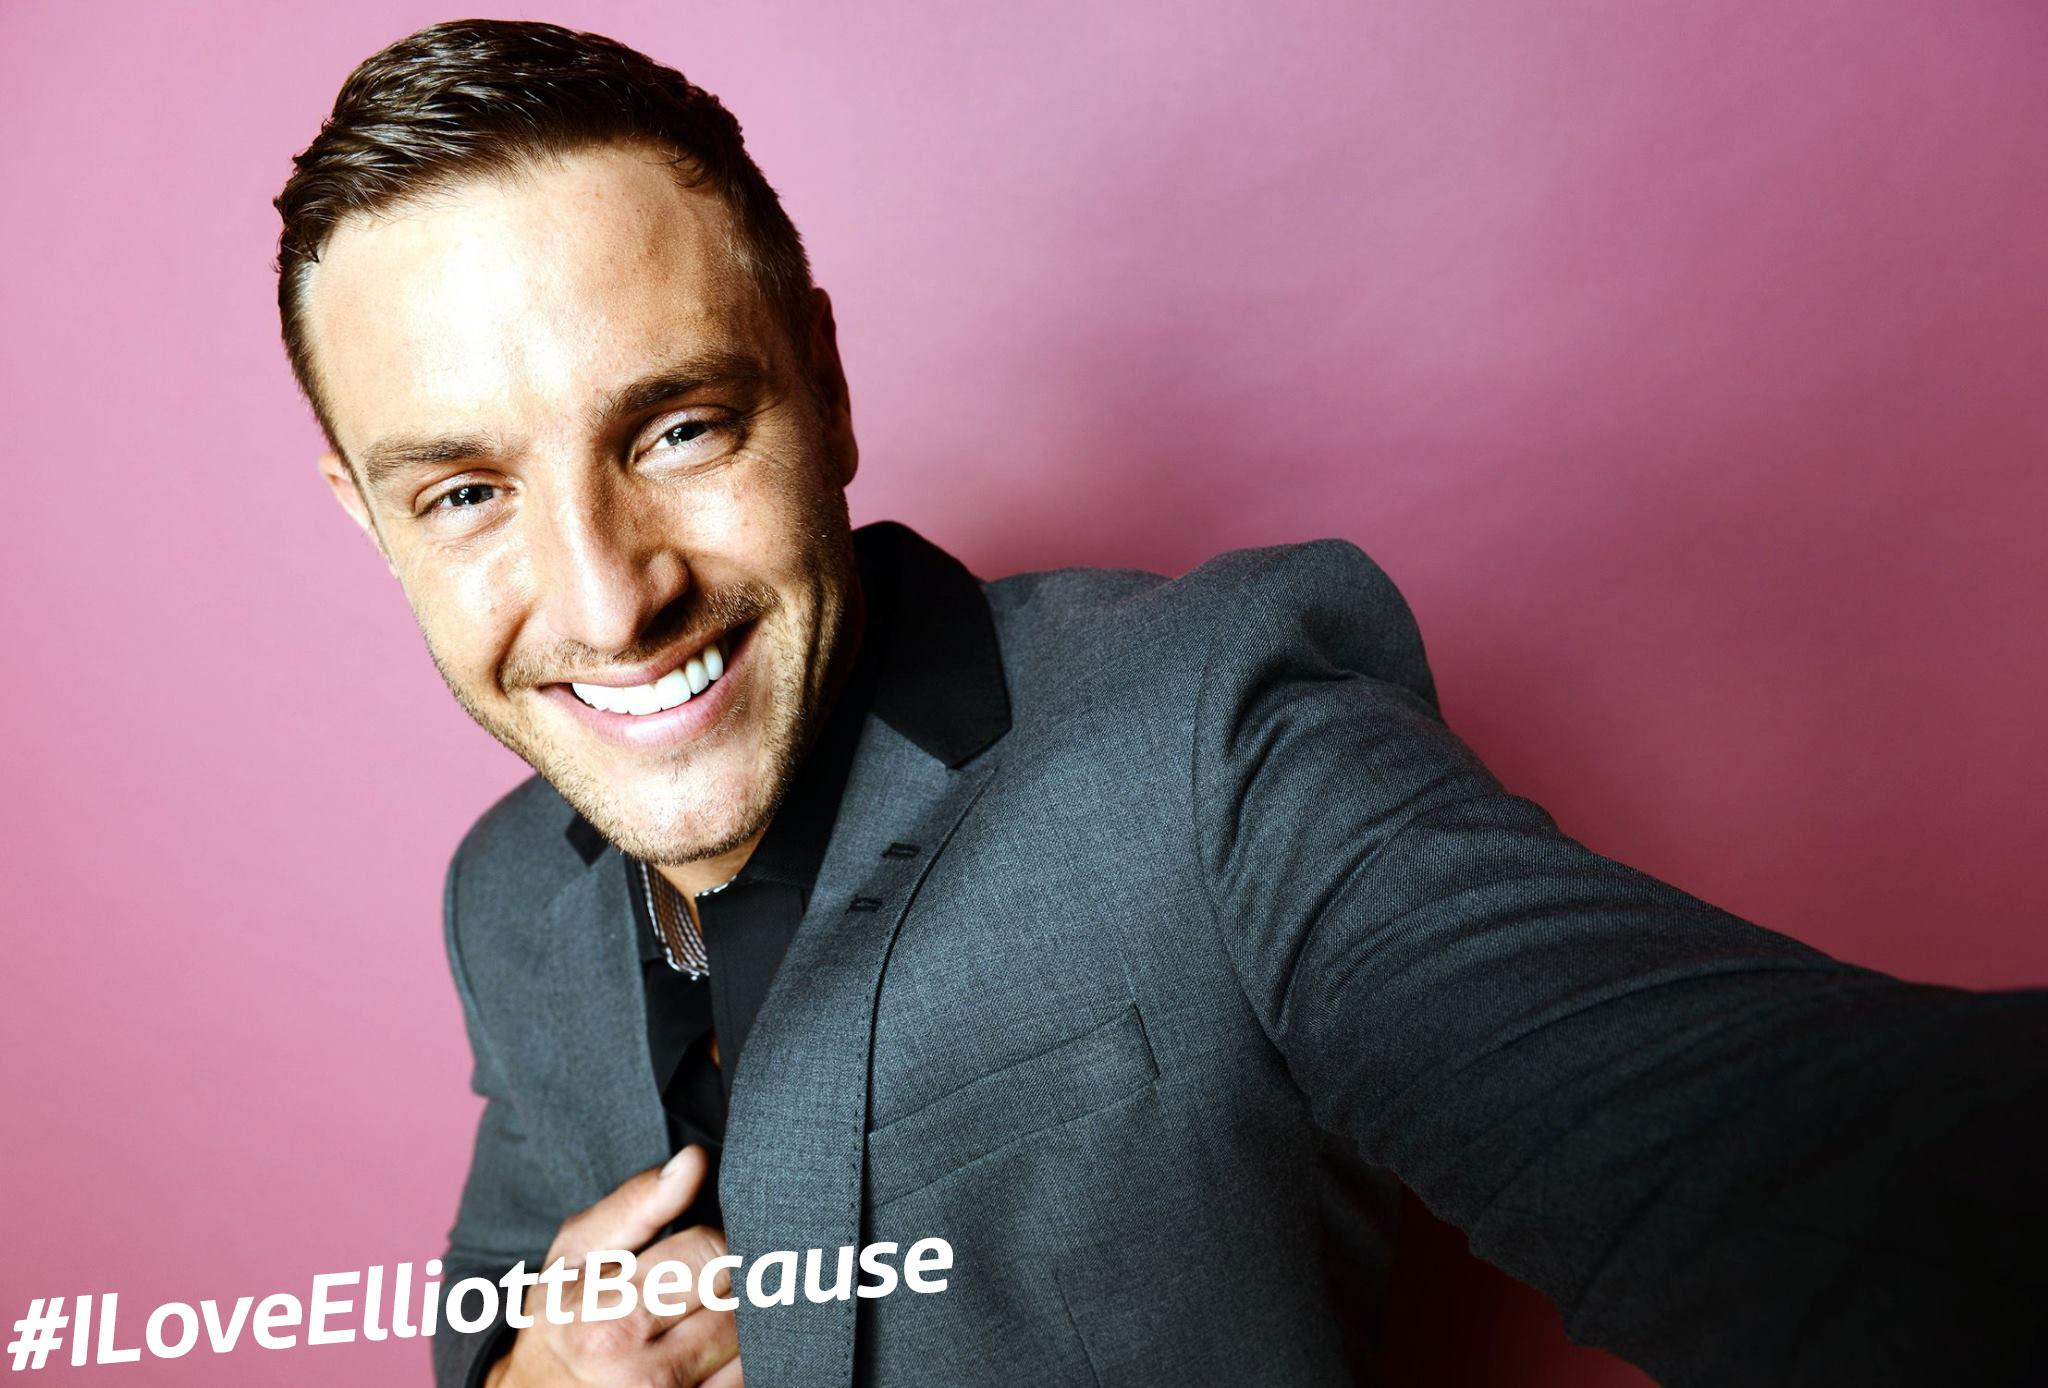 RT @ITVBe: Some great #ILoveElliottBecause tweets - keep 'em coming, he might follow you! http://t.co/h5e721P1c4